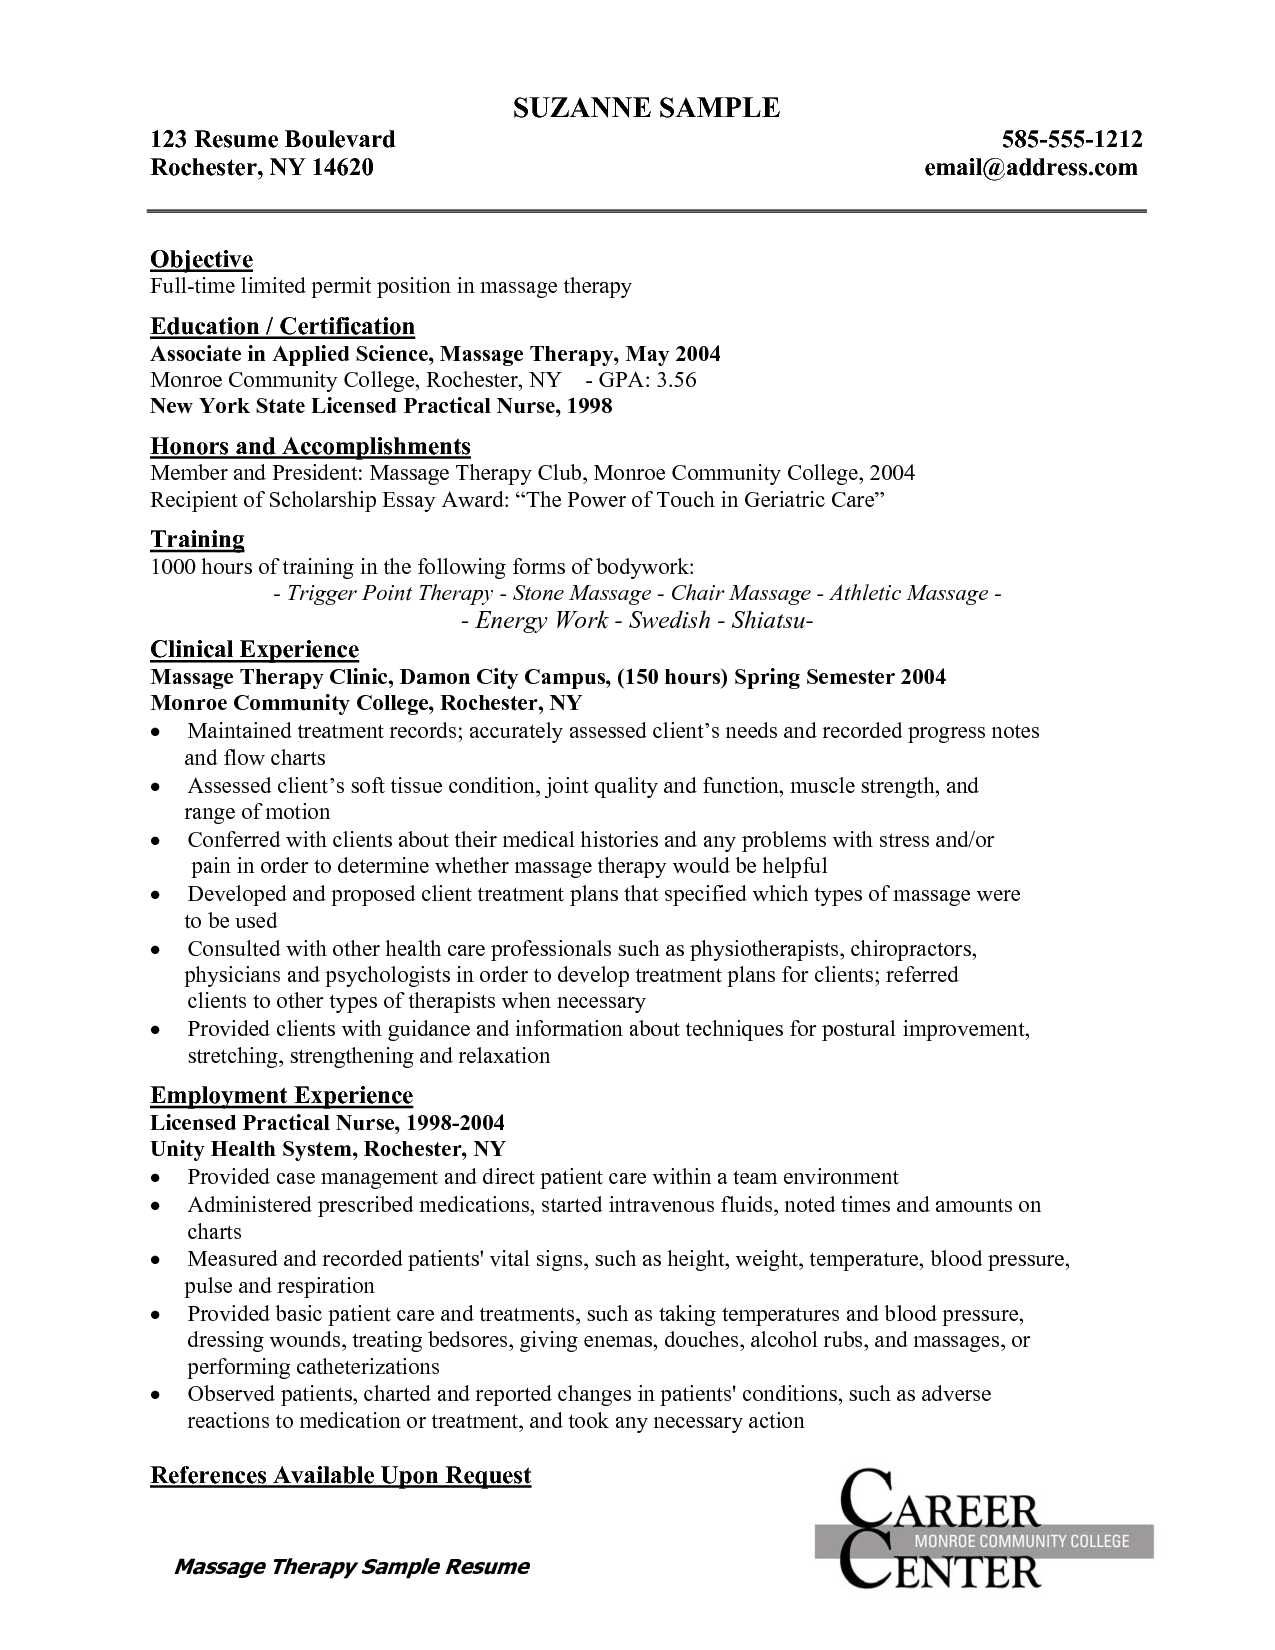 Free Resume Templates For Lpn Nurses Freeresumetemplates